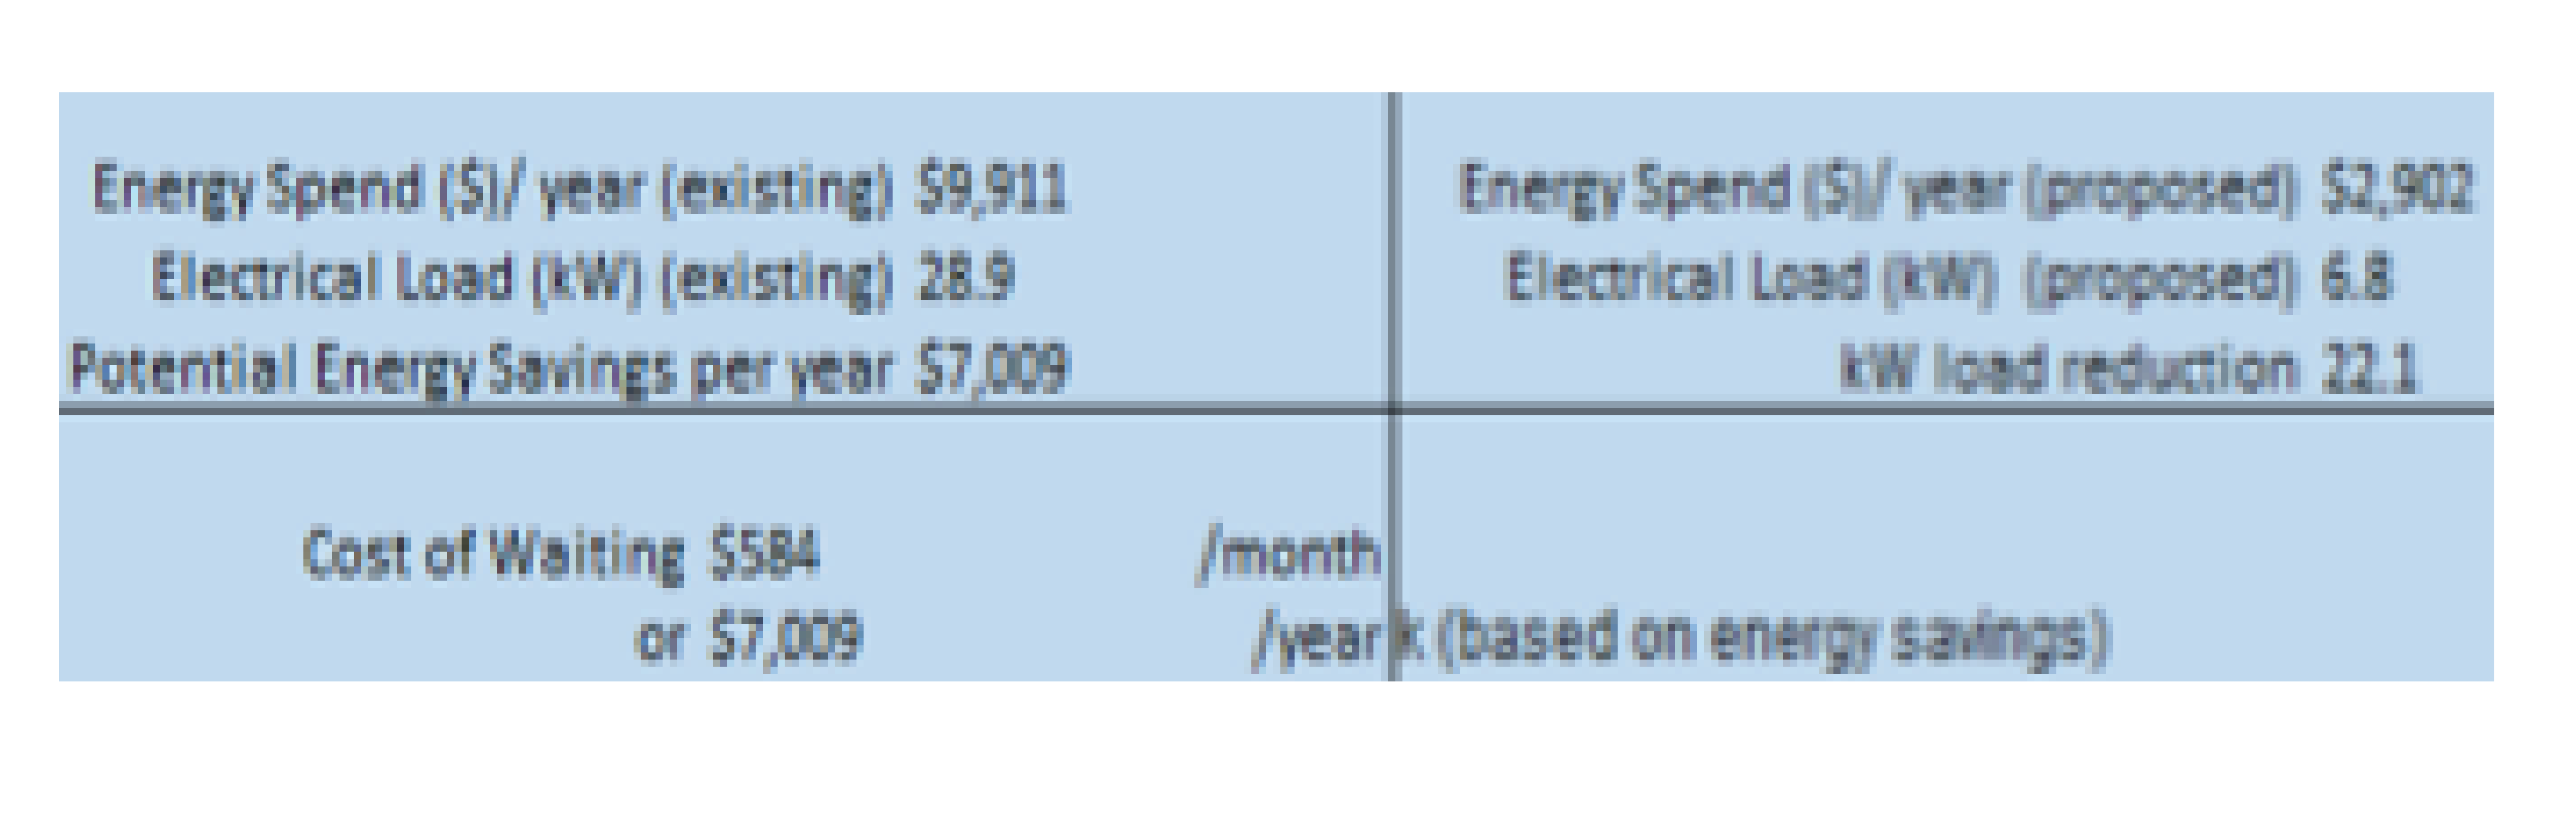 Scott Electric Edge Group Energy Estimates